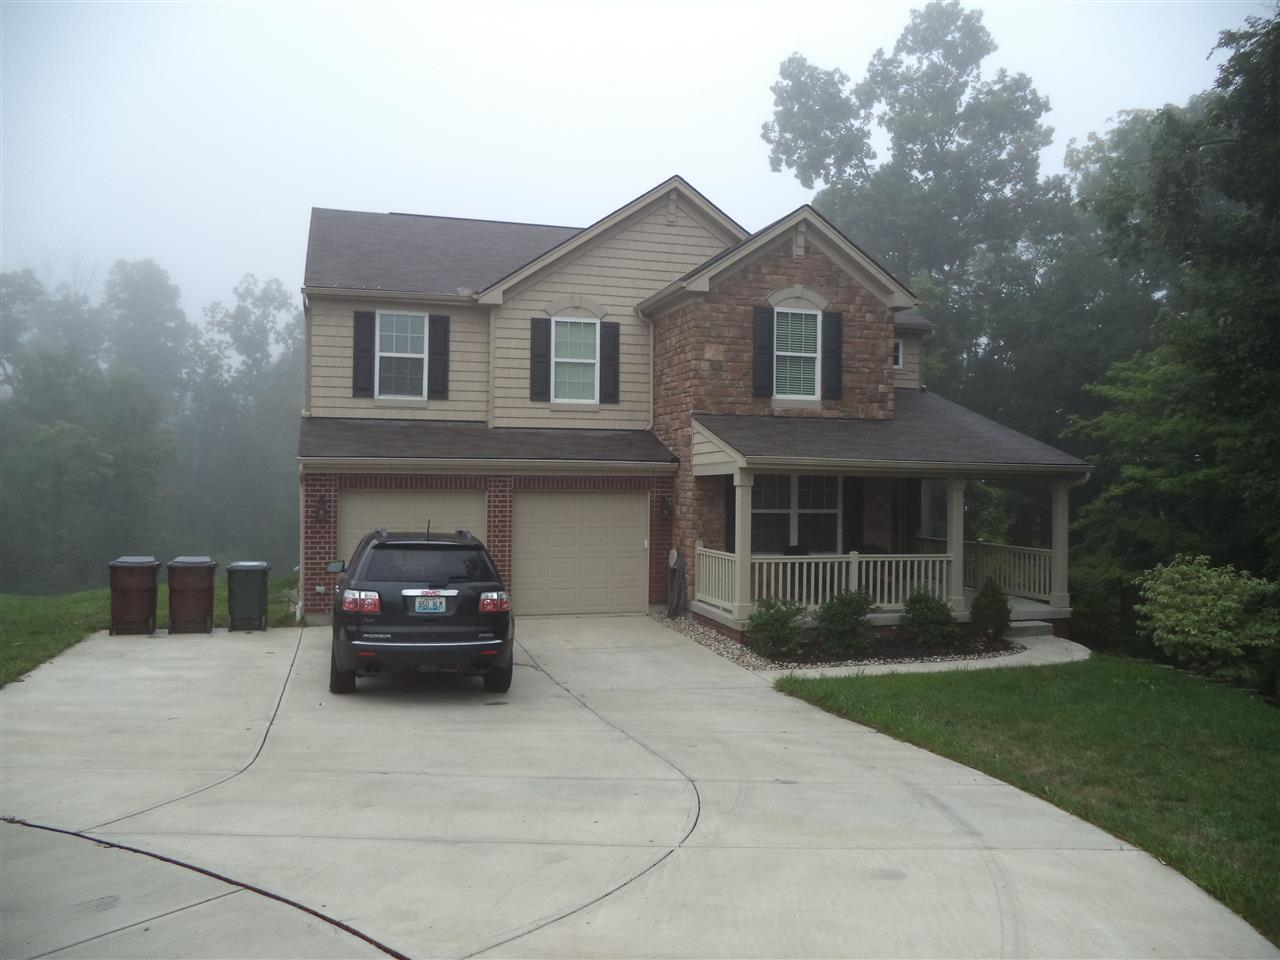 Photo 1 for 6415 Arabian Dr Independence, KY 41051